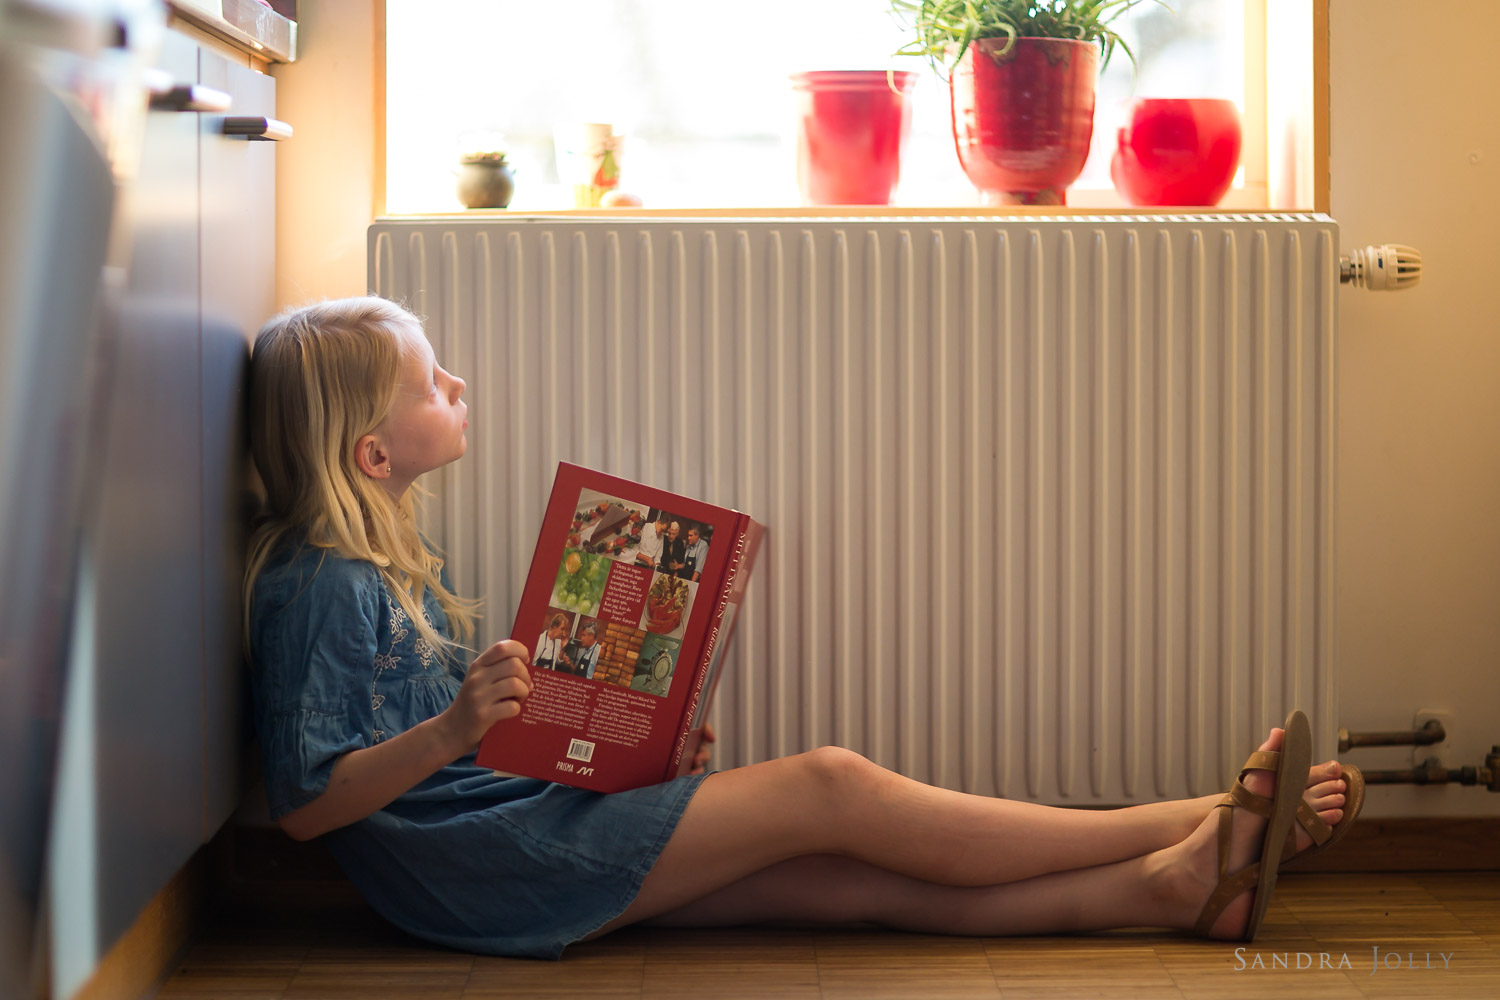 girl-looking-out-window-by-stockholm-family-photographer-sandra-jolly.jpg